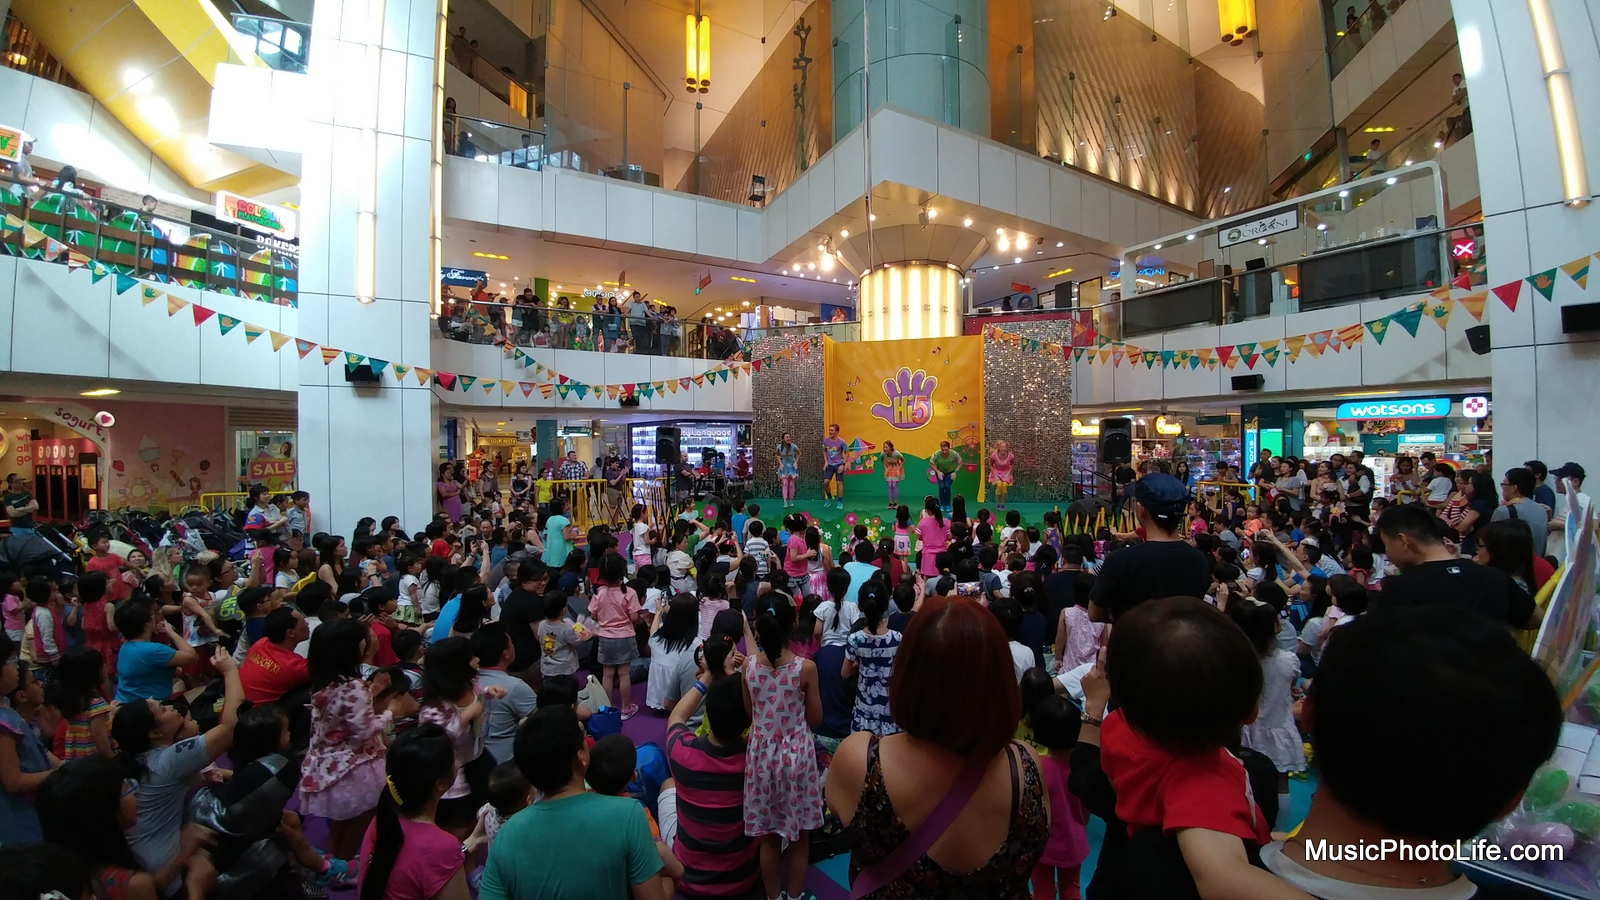 Performance event wide angle shot with LG G5